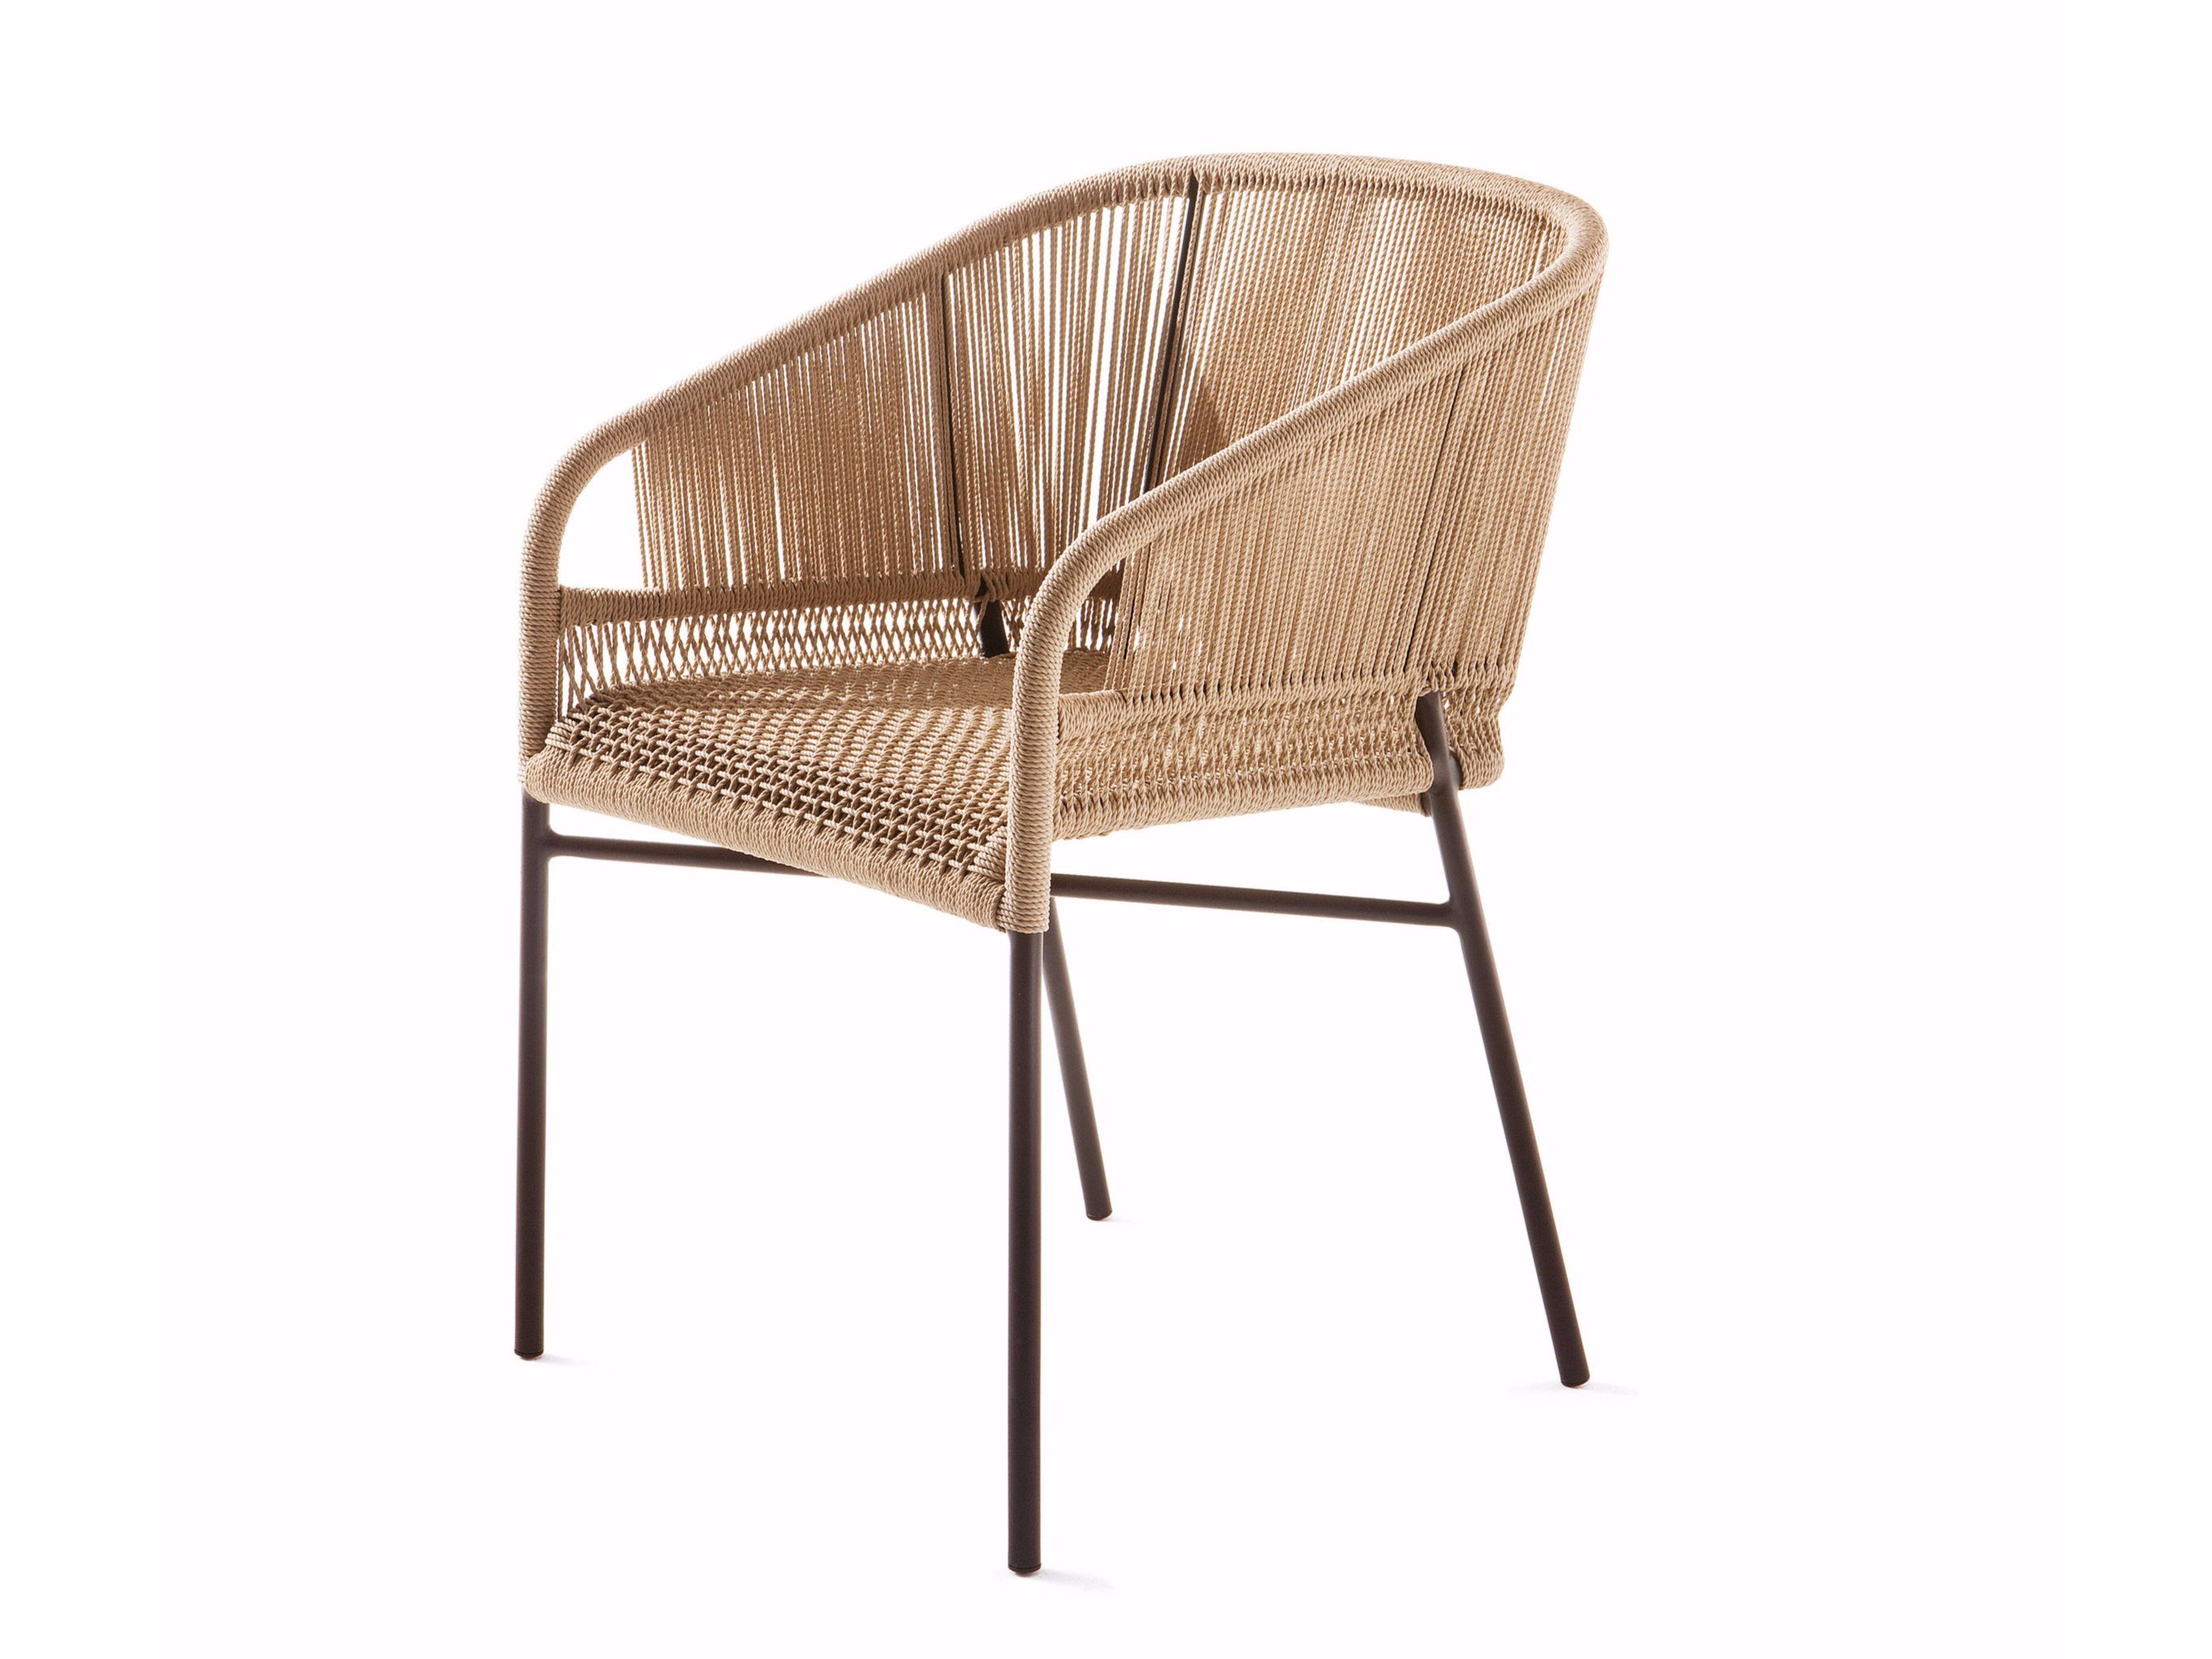 Cricket easy chair by varaschin design anki gneib for Easy chair designs